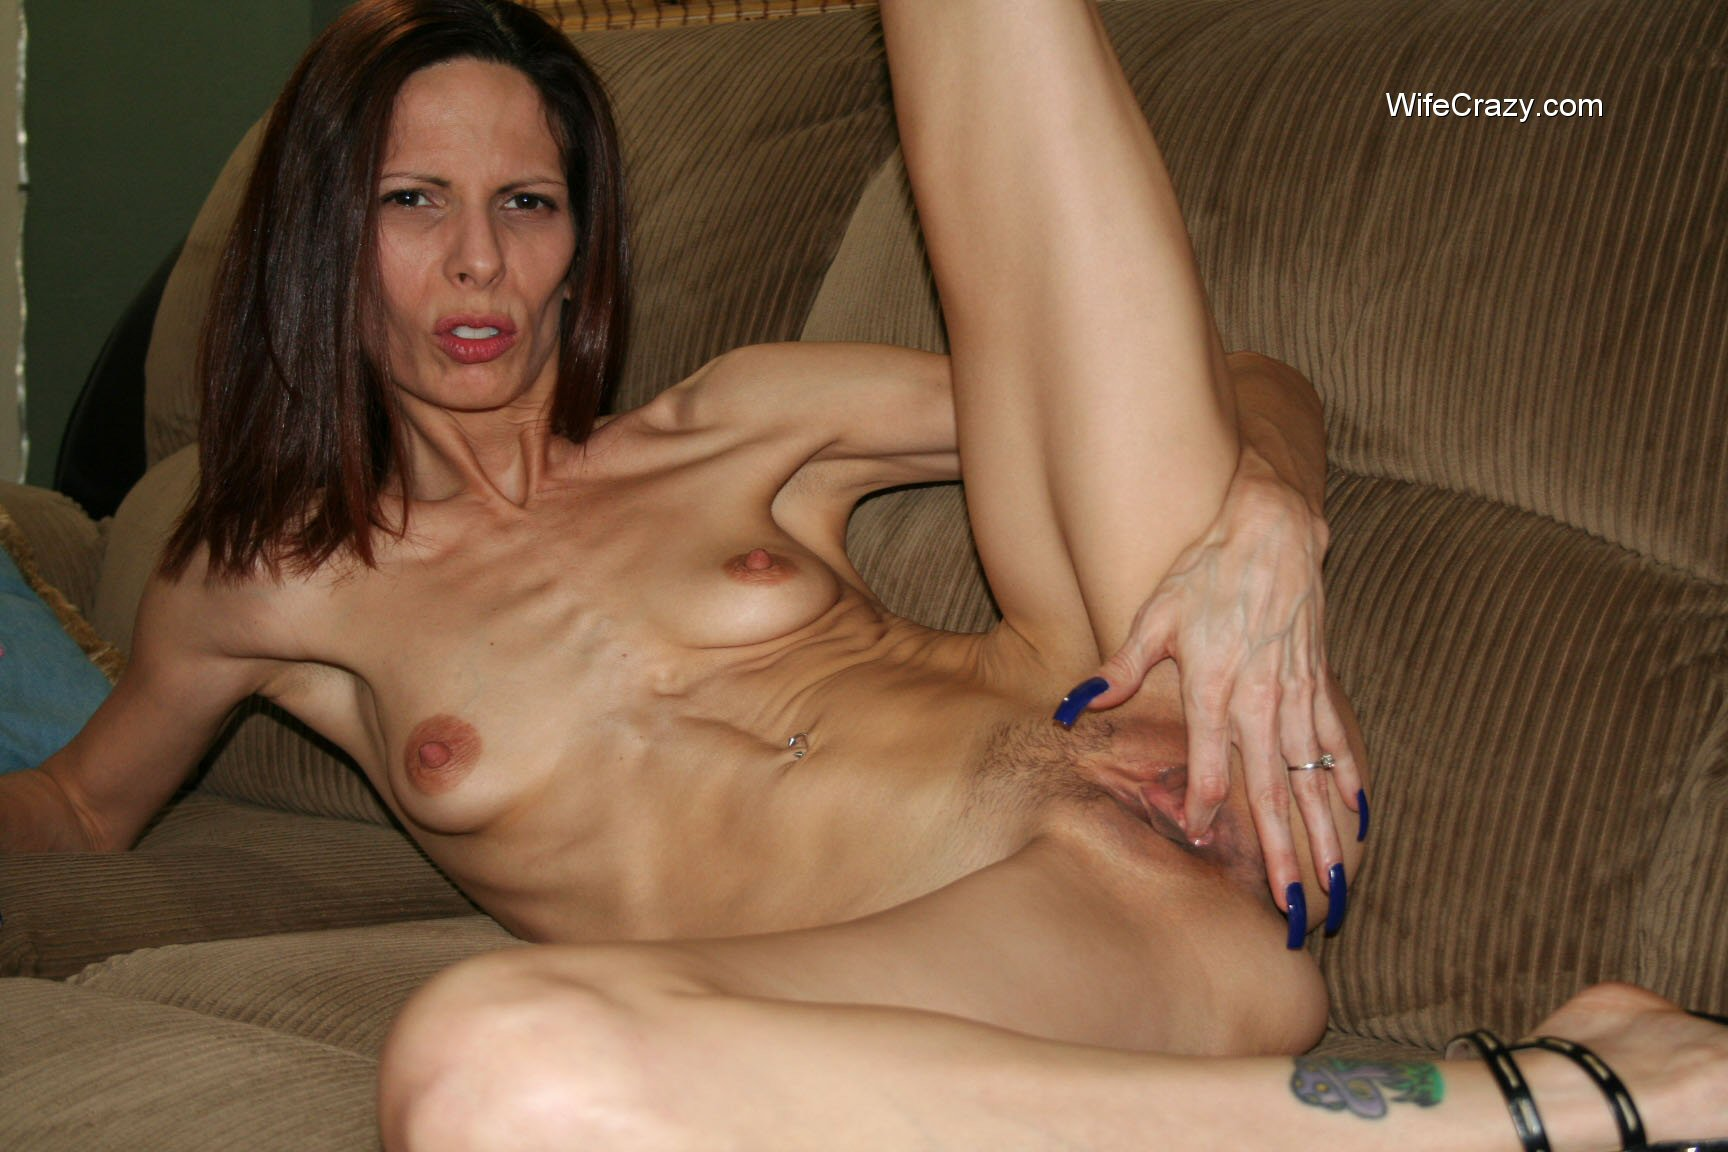 Alt binary nude older picture woman